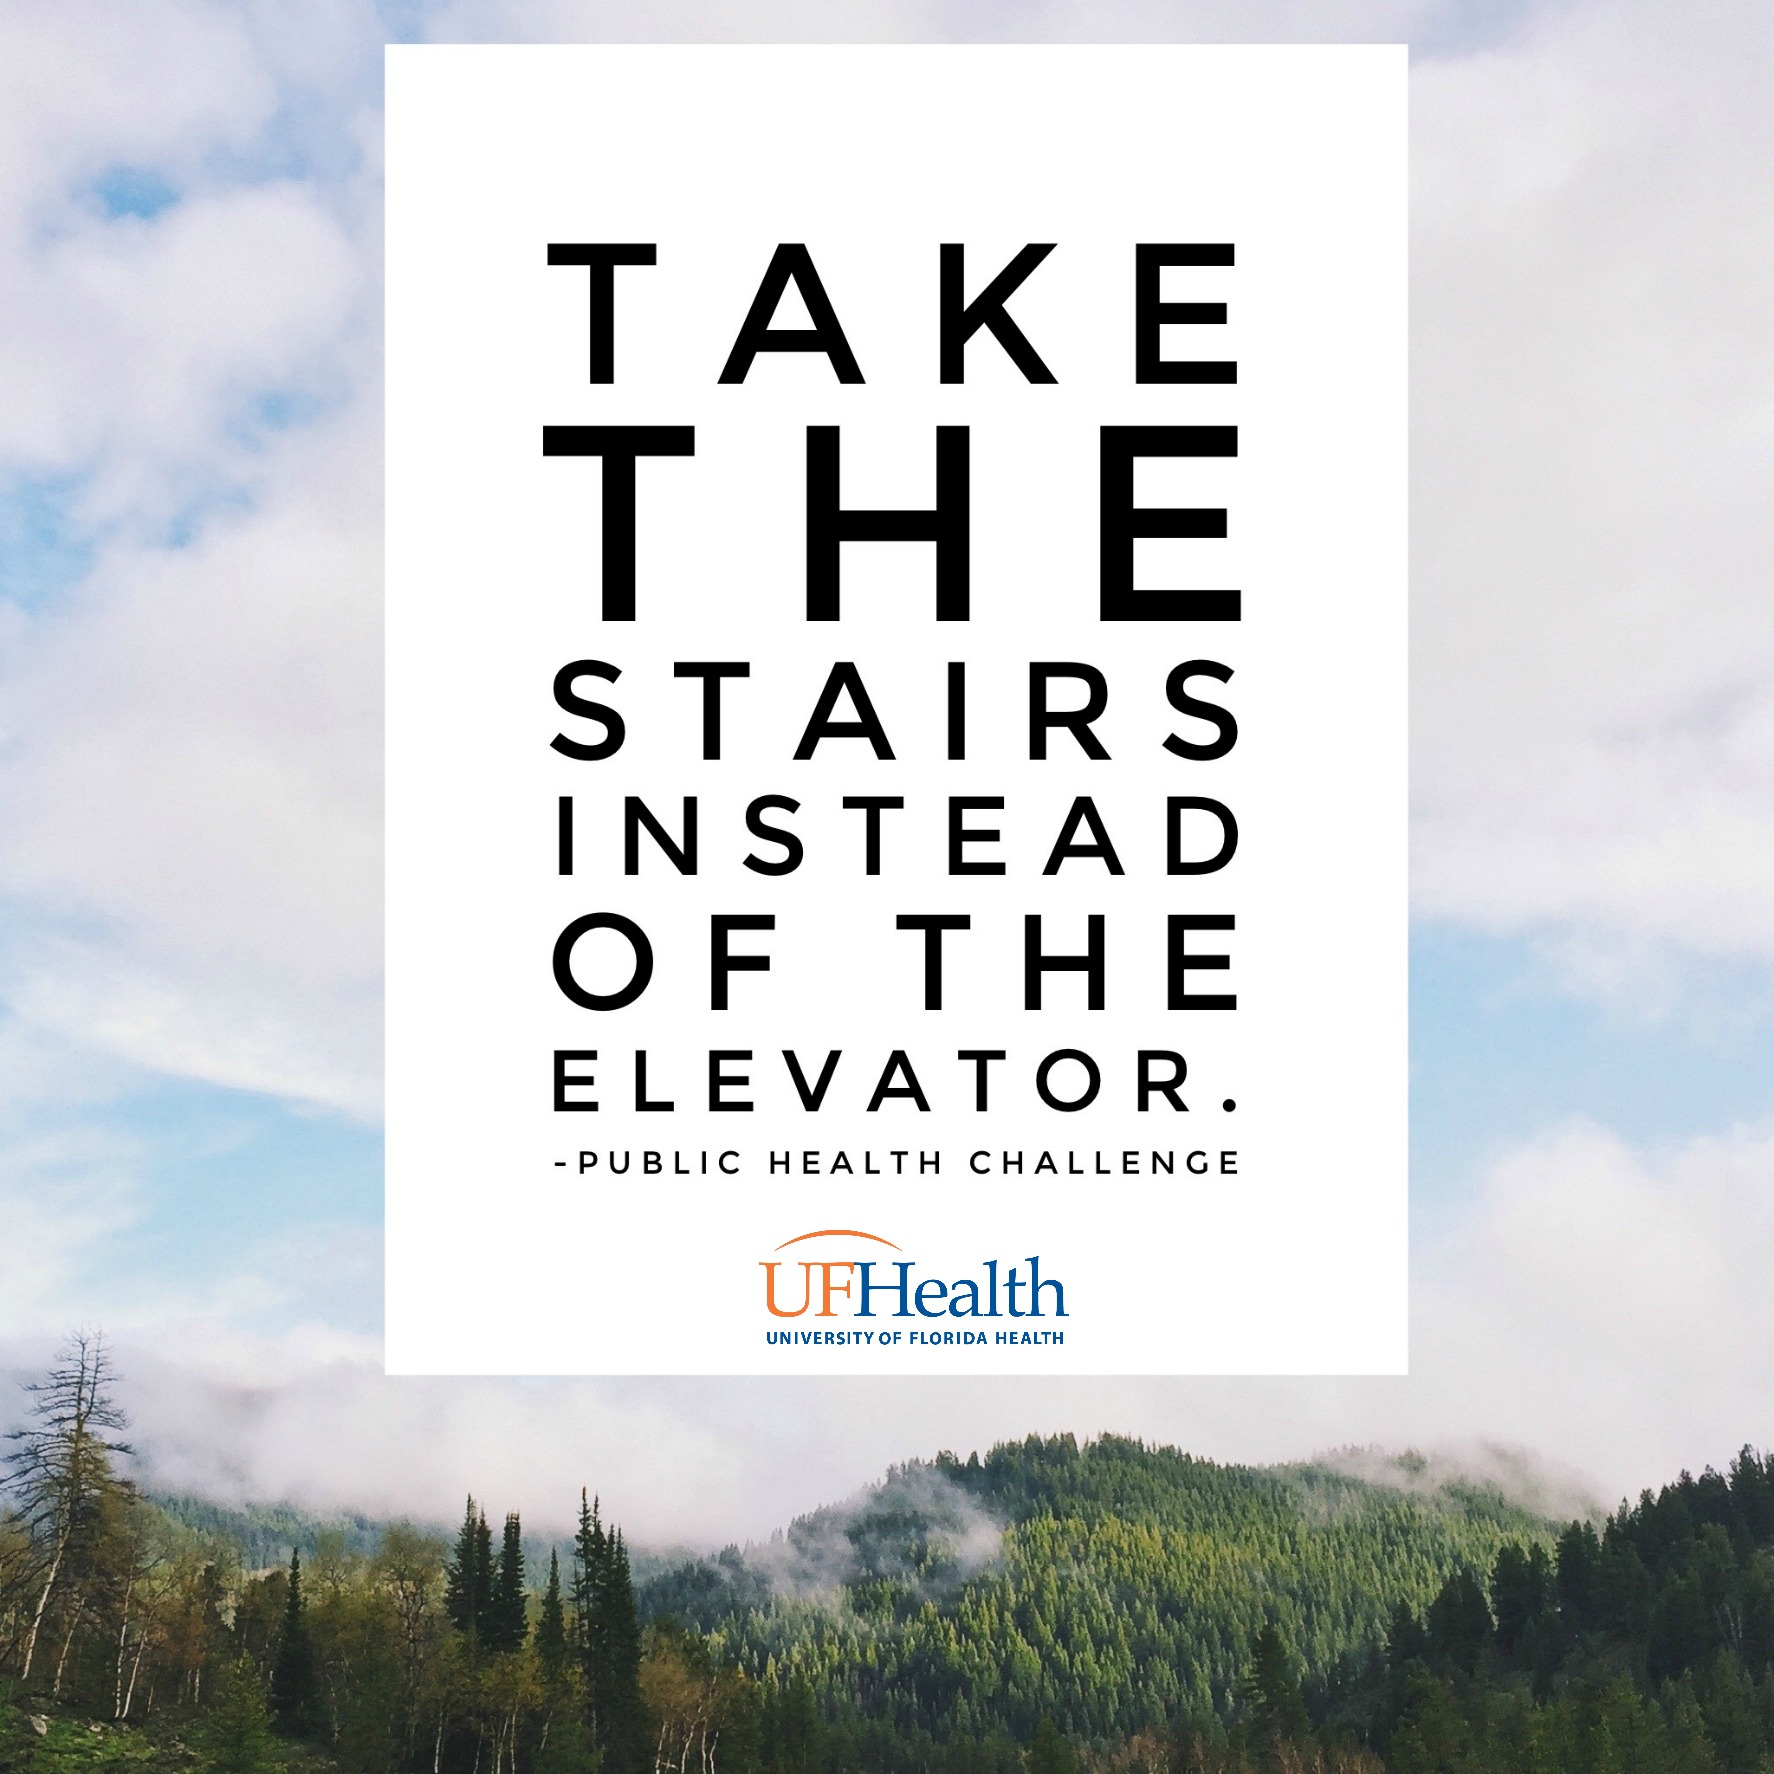 take the stairs instead of the elevator.